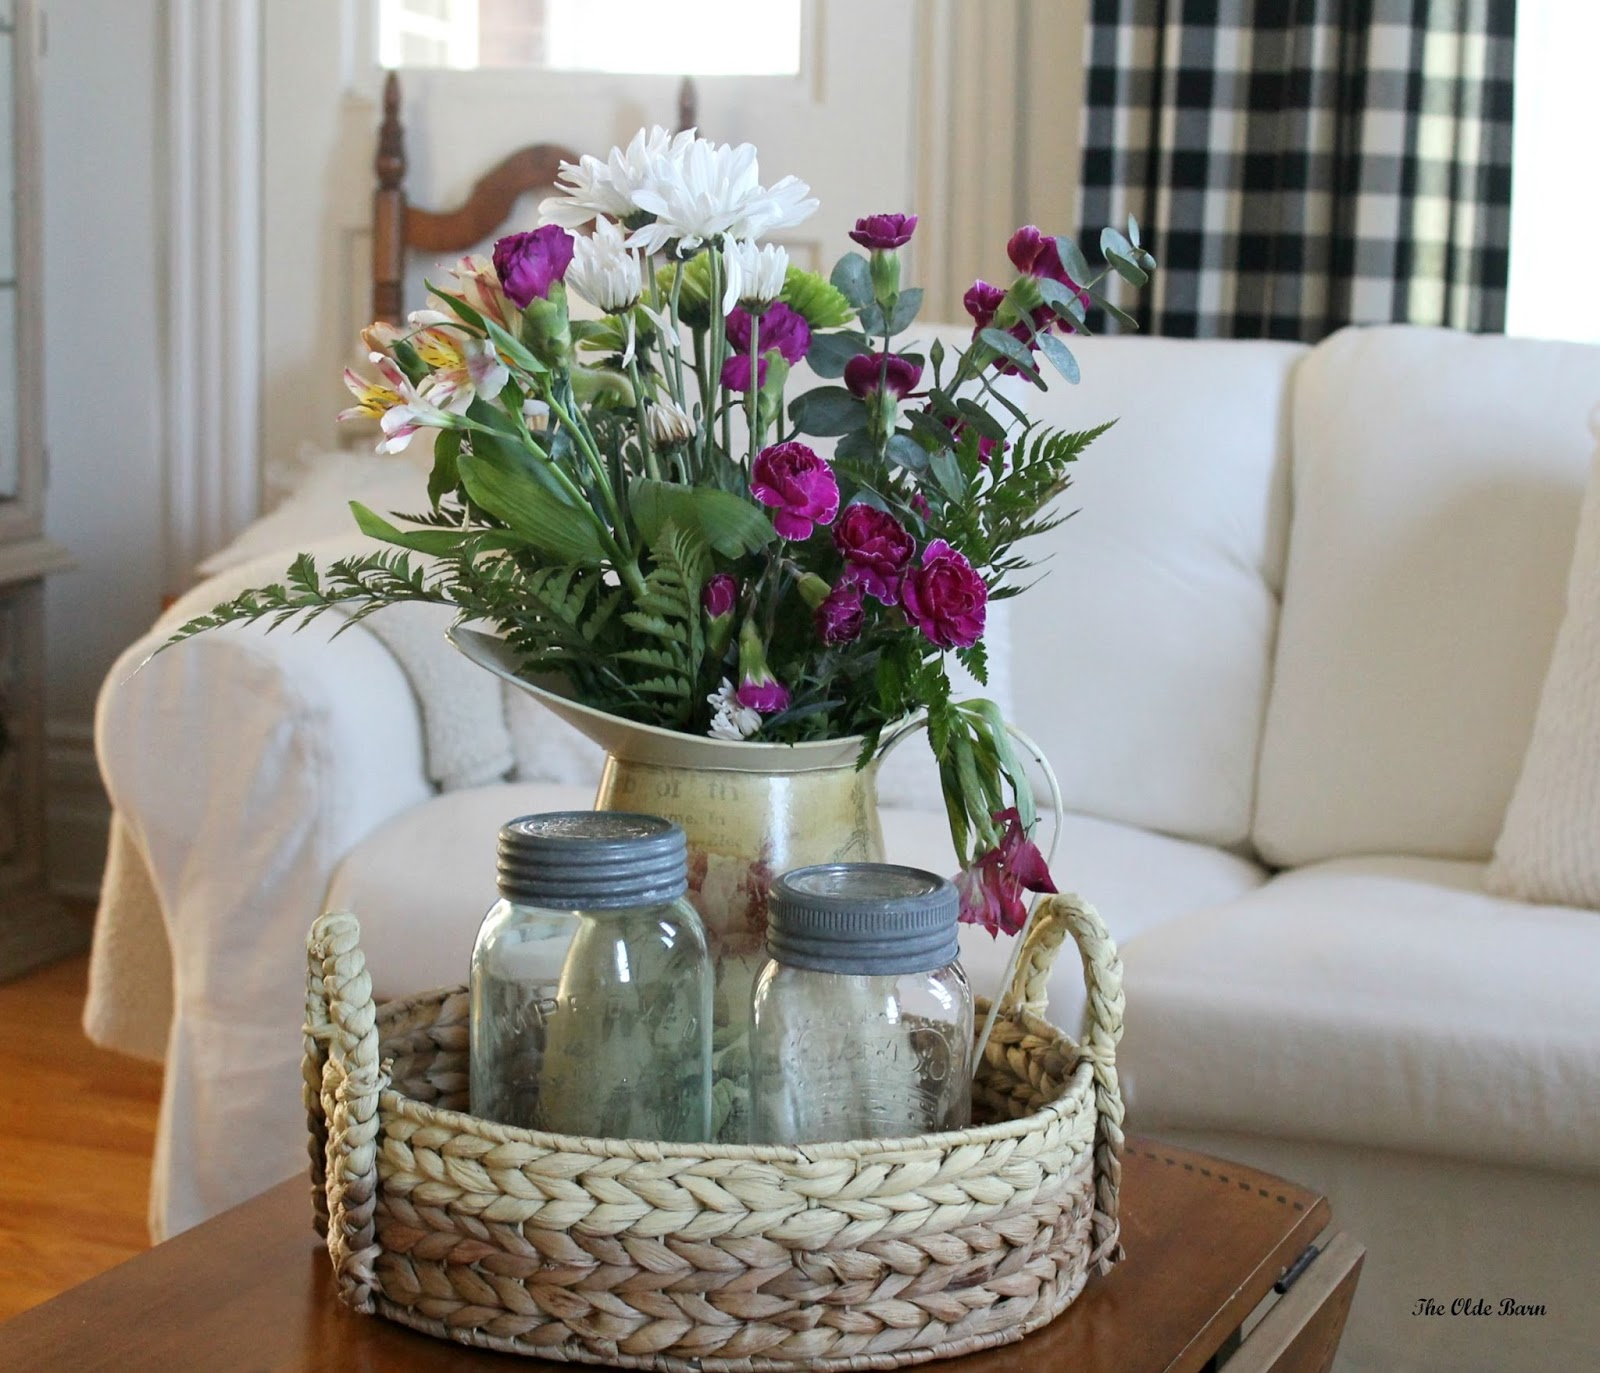 Flower vase kijiji - Bit Of Farmhouse Style A Little Eclectic Here And There With A Few Antique Touches And Always Fresh Flowers Therapy For The Soul